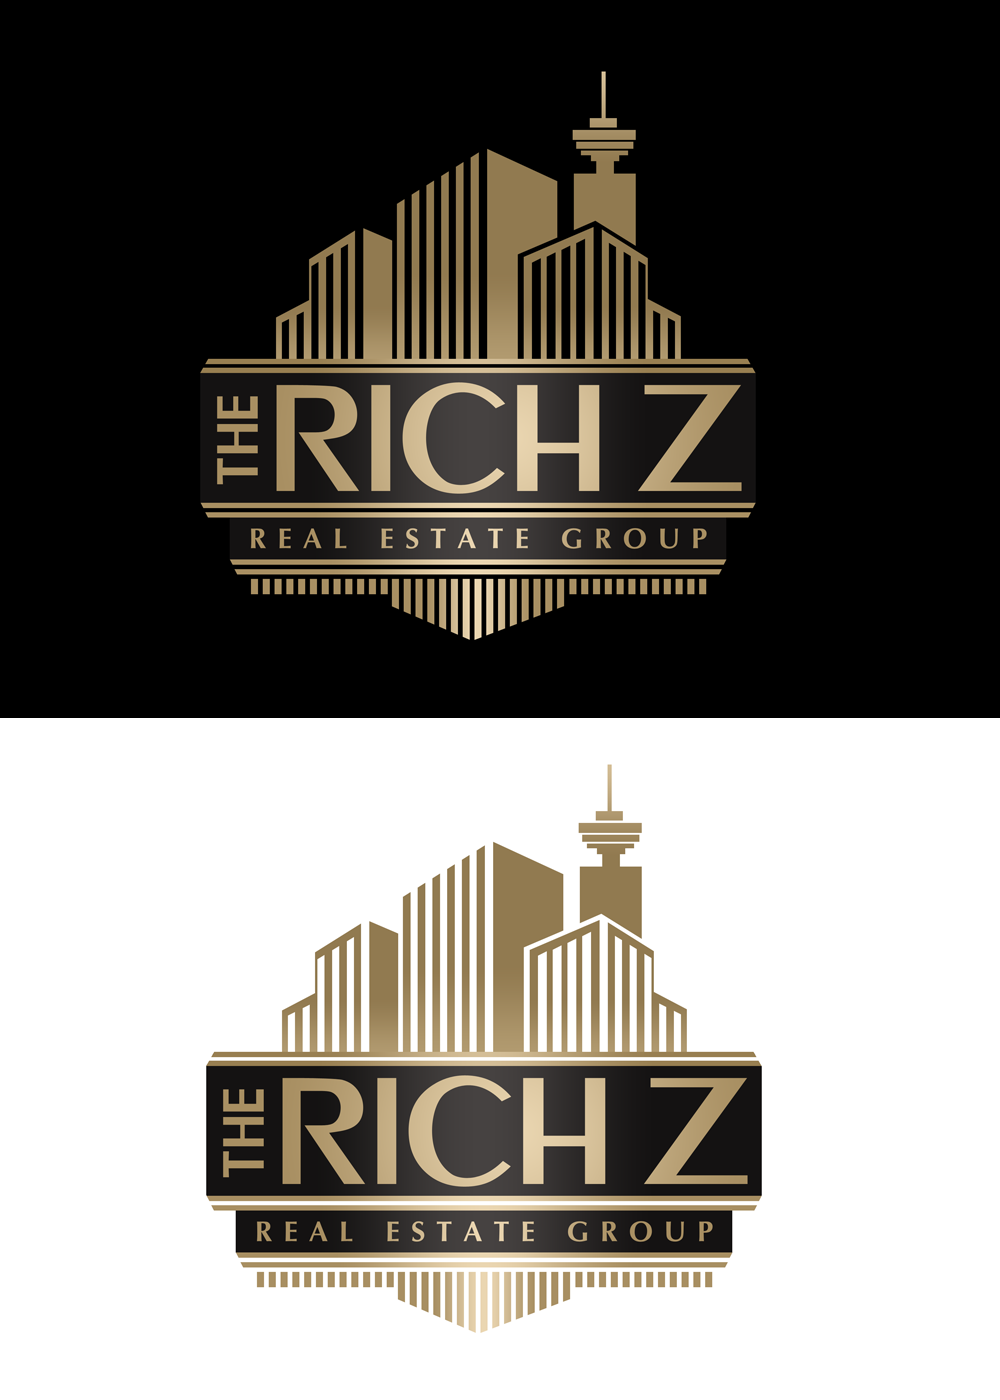 Logo Design by Private User - Entry No. 353 in the Logo Design Contest The Rich Z. Real Estate Group Logo Design.